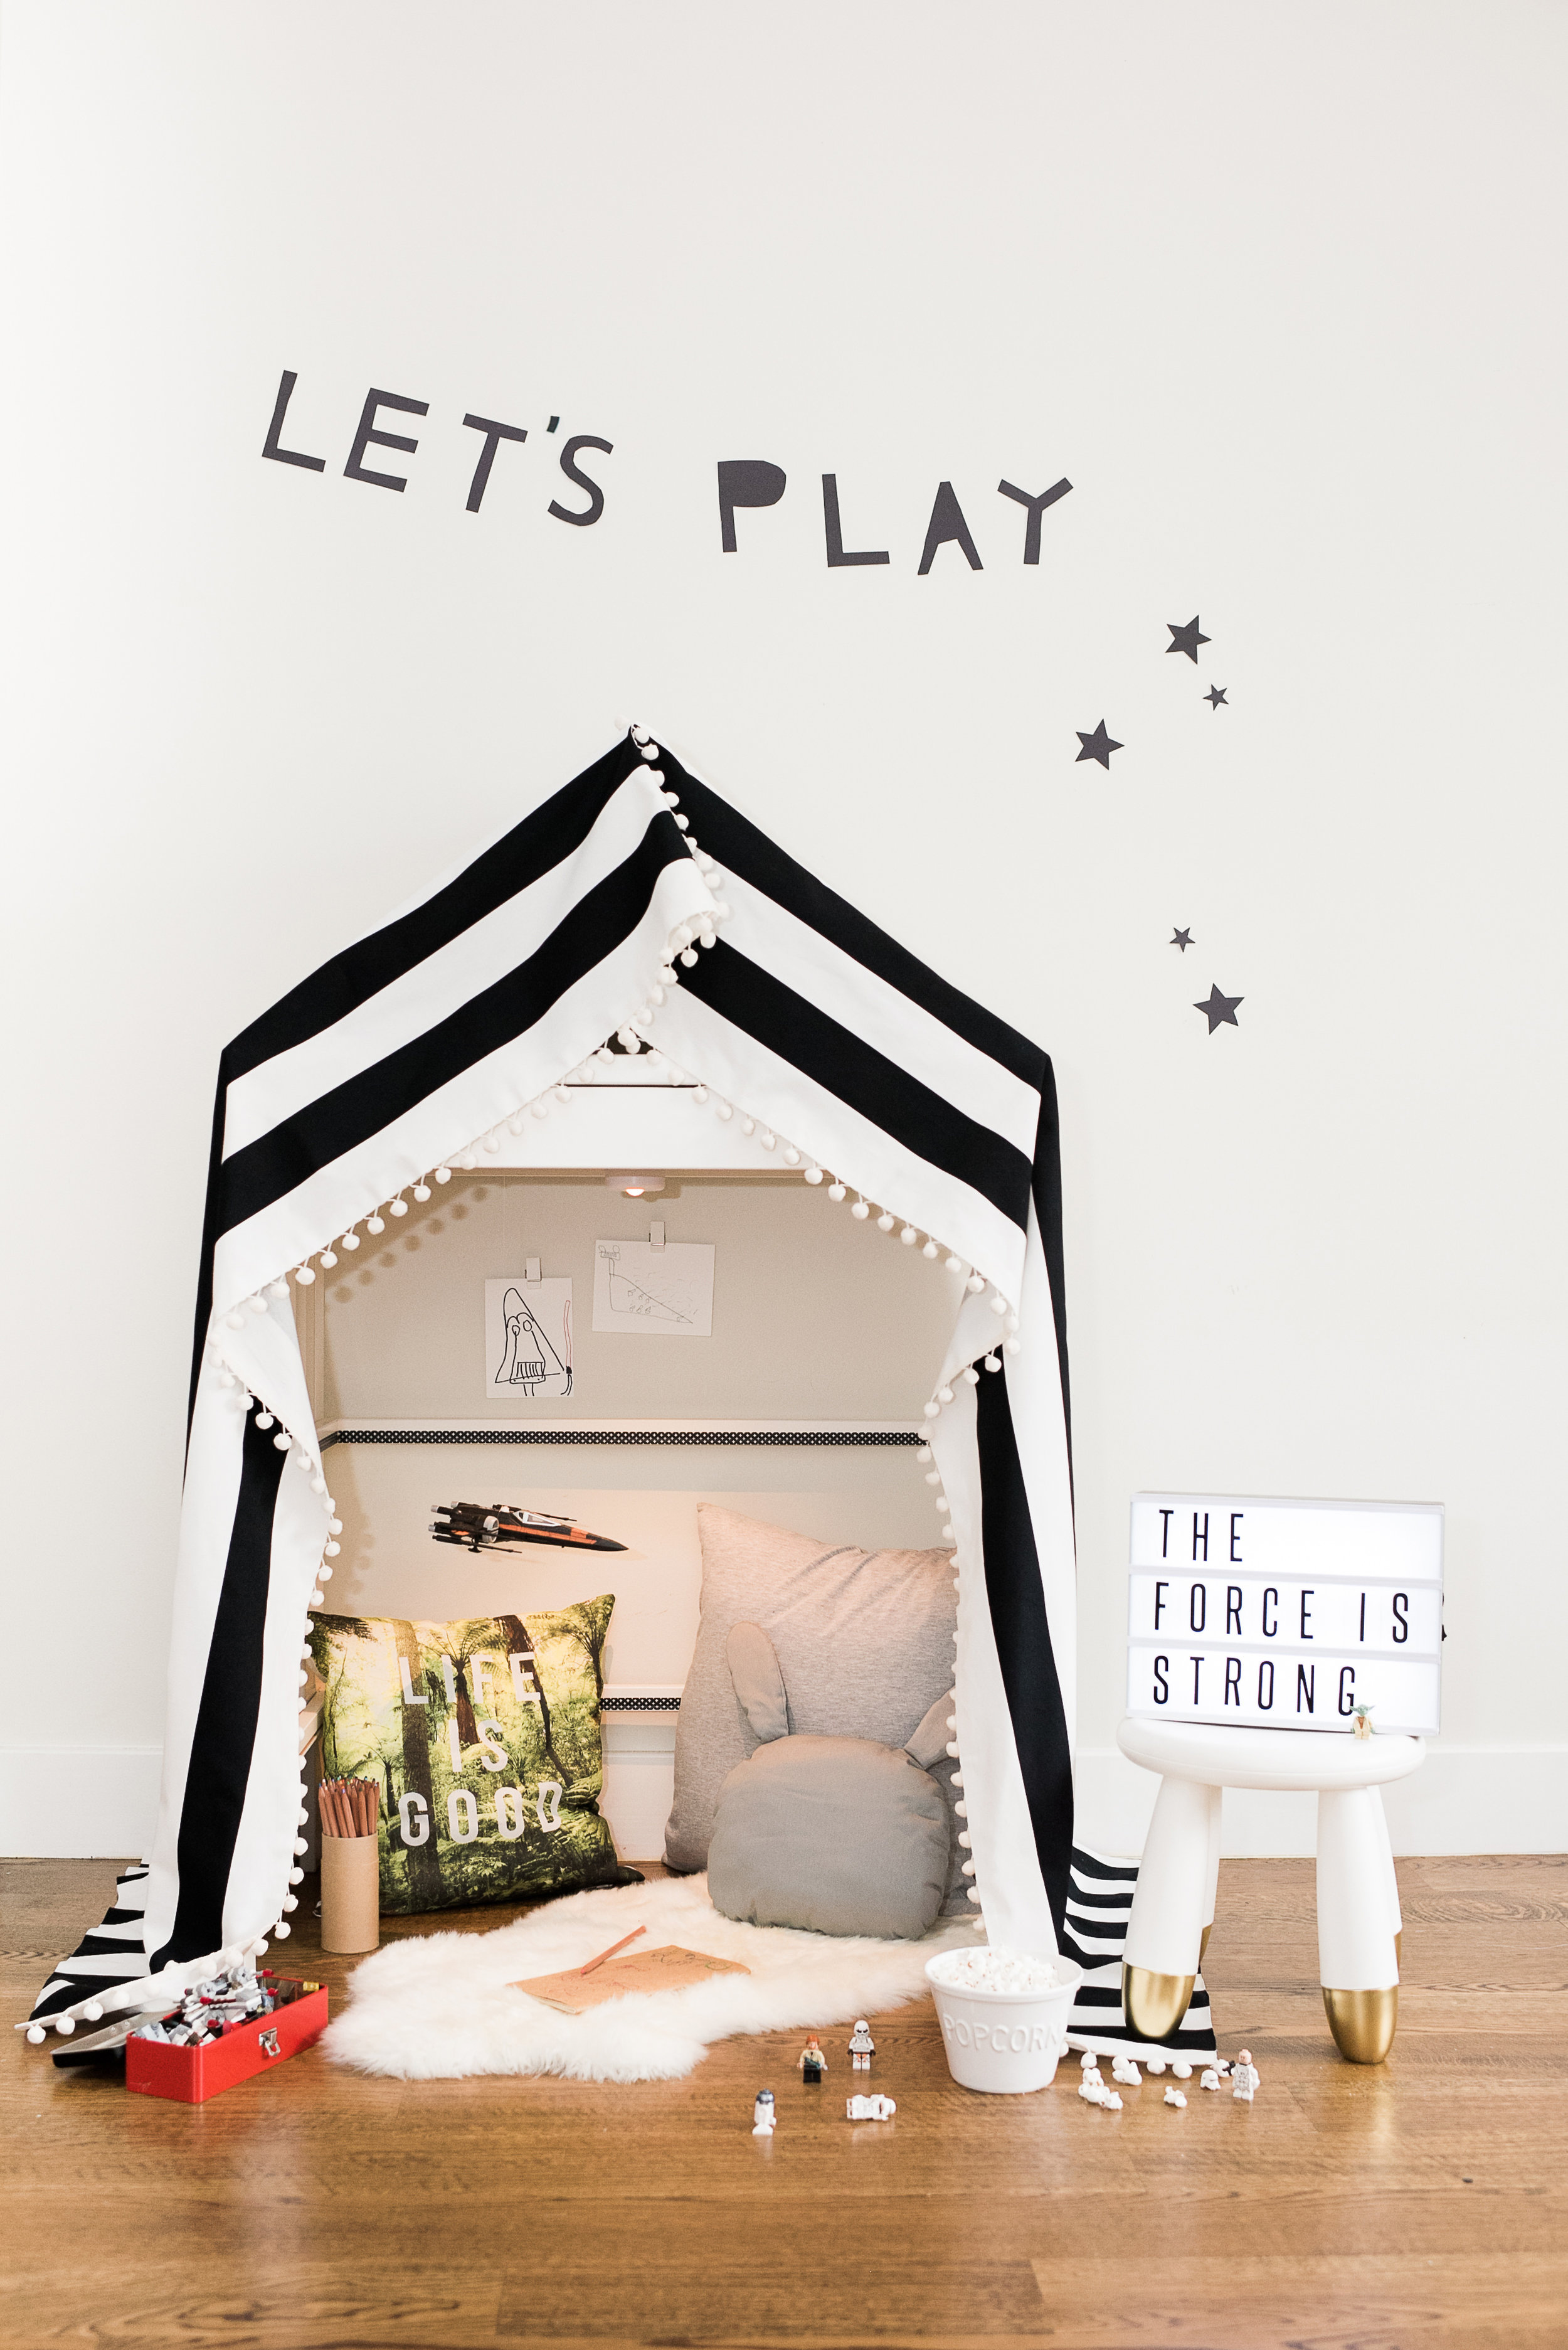 My son loves to play make believe and since our home is so small, I though it would be nice to create a space just for him. Get the full tutorial on how to make this your own  here .